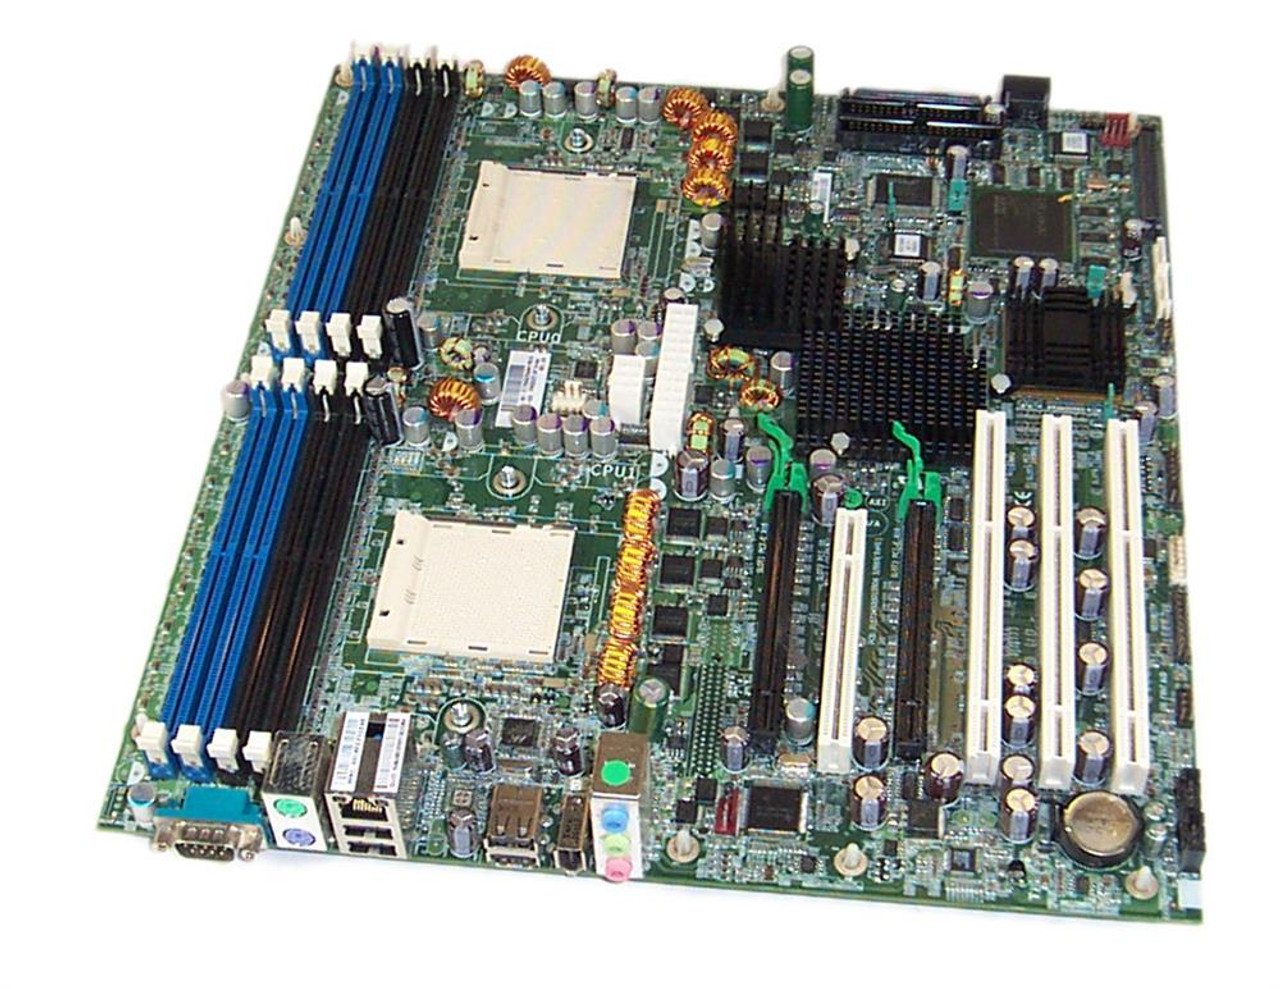 409665-001 - HP System Board (MotherBoard) Dual Processor ATX Form Factor  for XW9300 Workstation